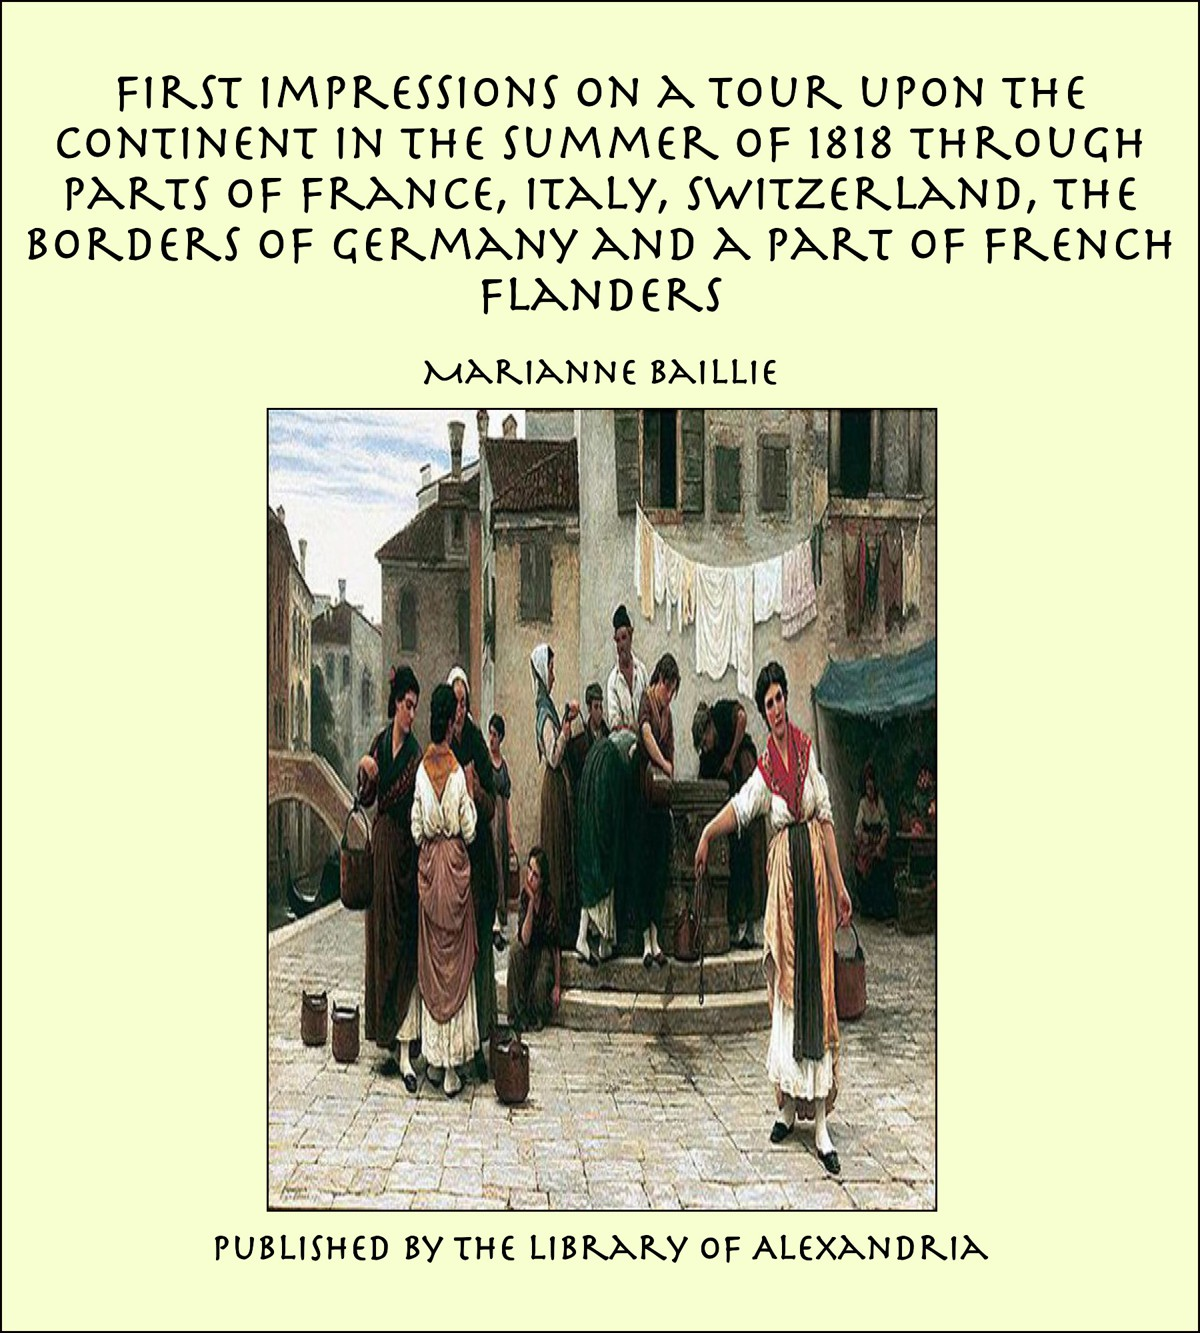 Marianne Baillie - First Impressions on a Tour upon the Continent In the summer of 1818 through parts of France, Italy, Switzerland, the Borders of Germany and a Part of French Flanders